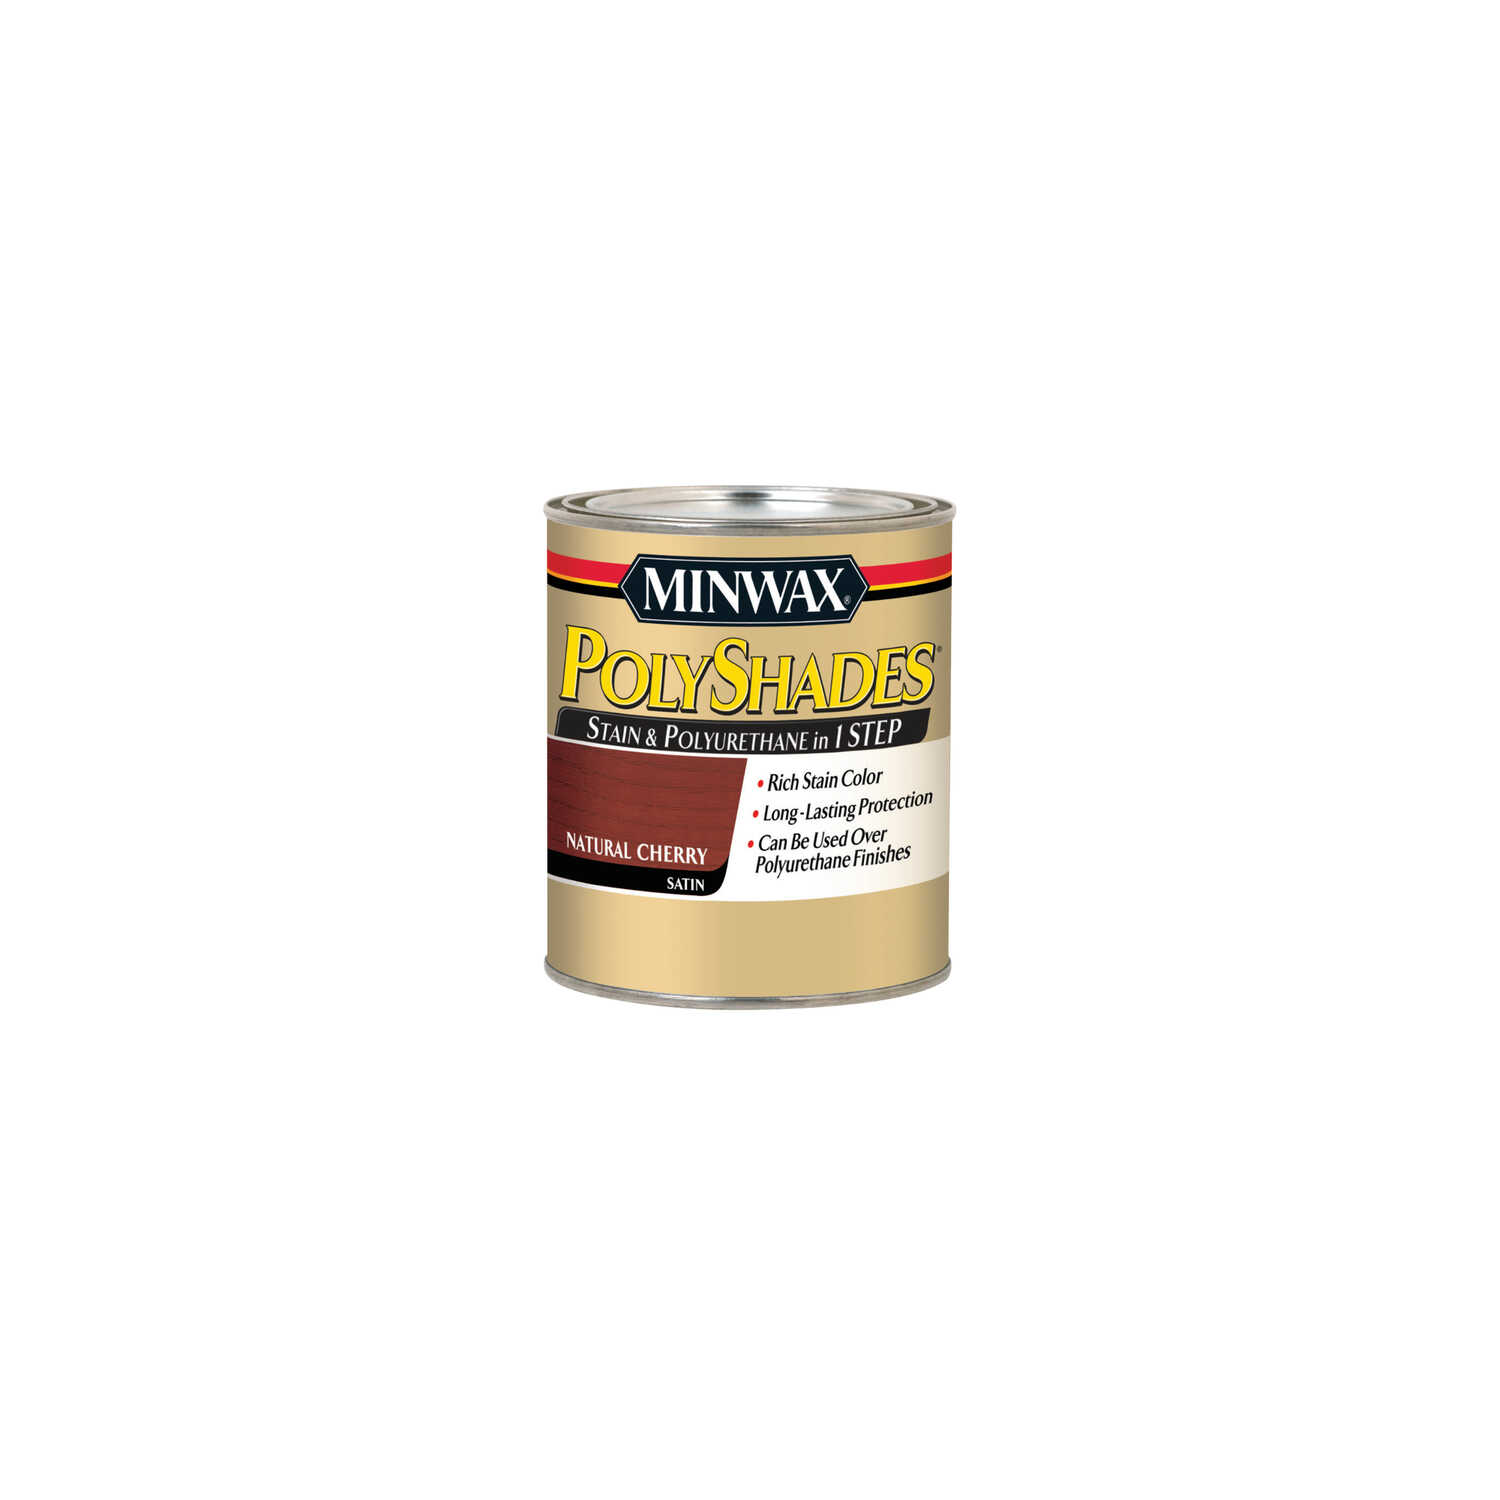 Minwax  PolyShades  Semi-Transparent  Satin  Natural Cherry  Oil-Based  Stain  0.5 pt.